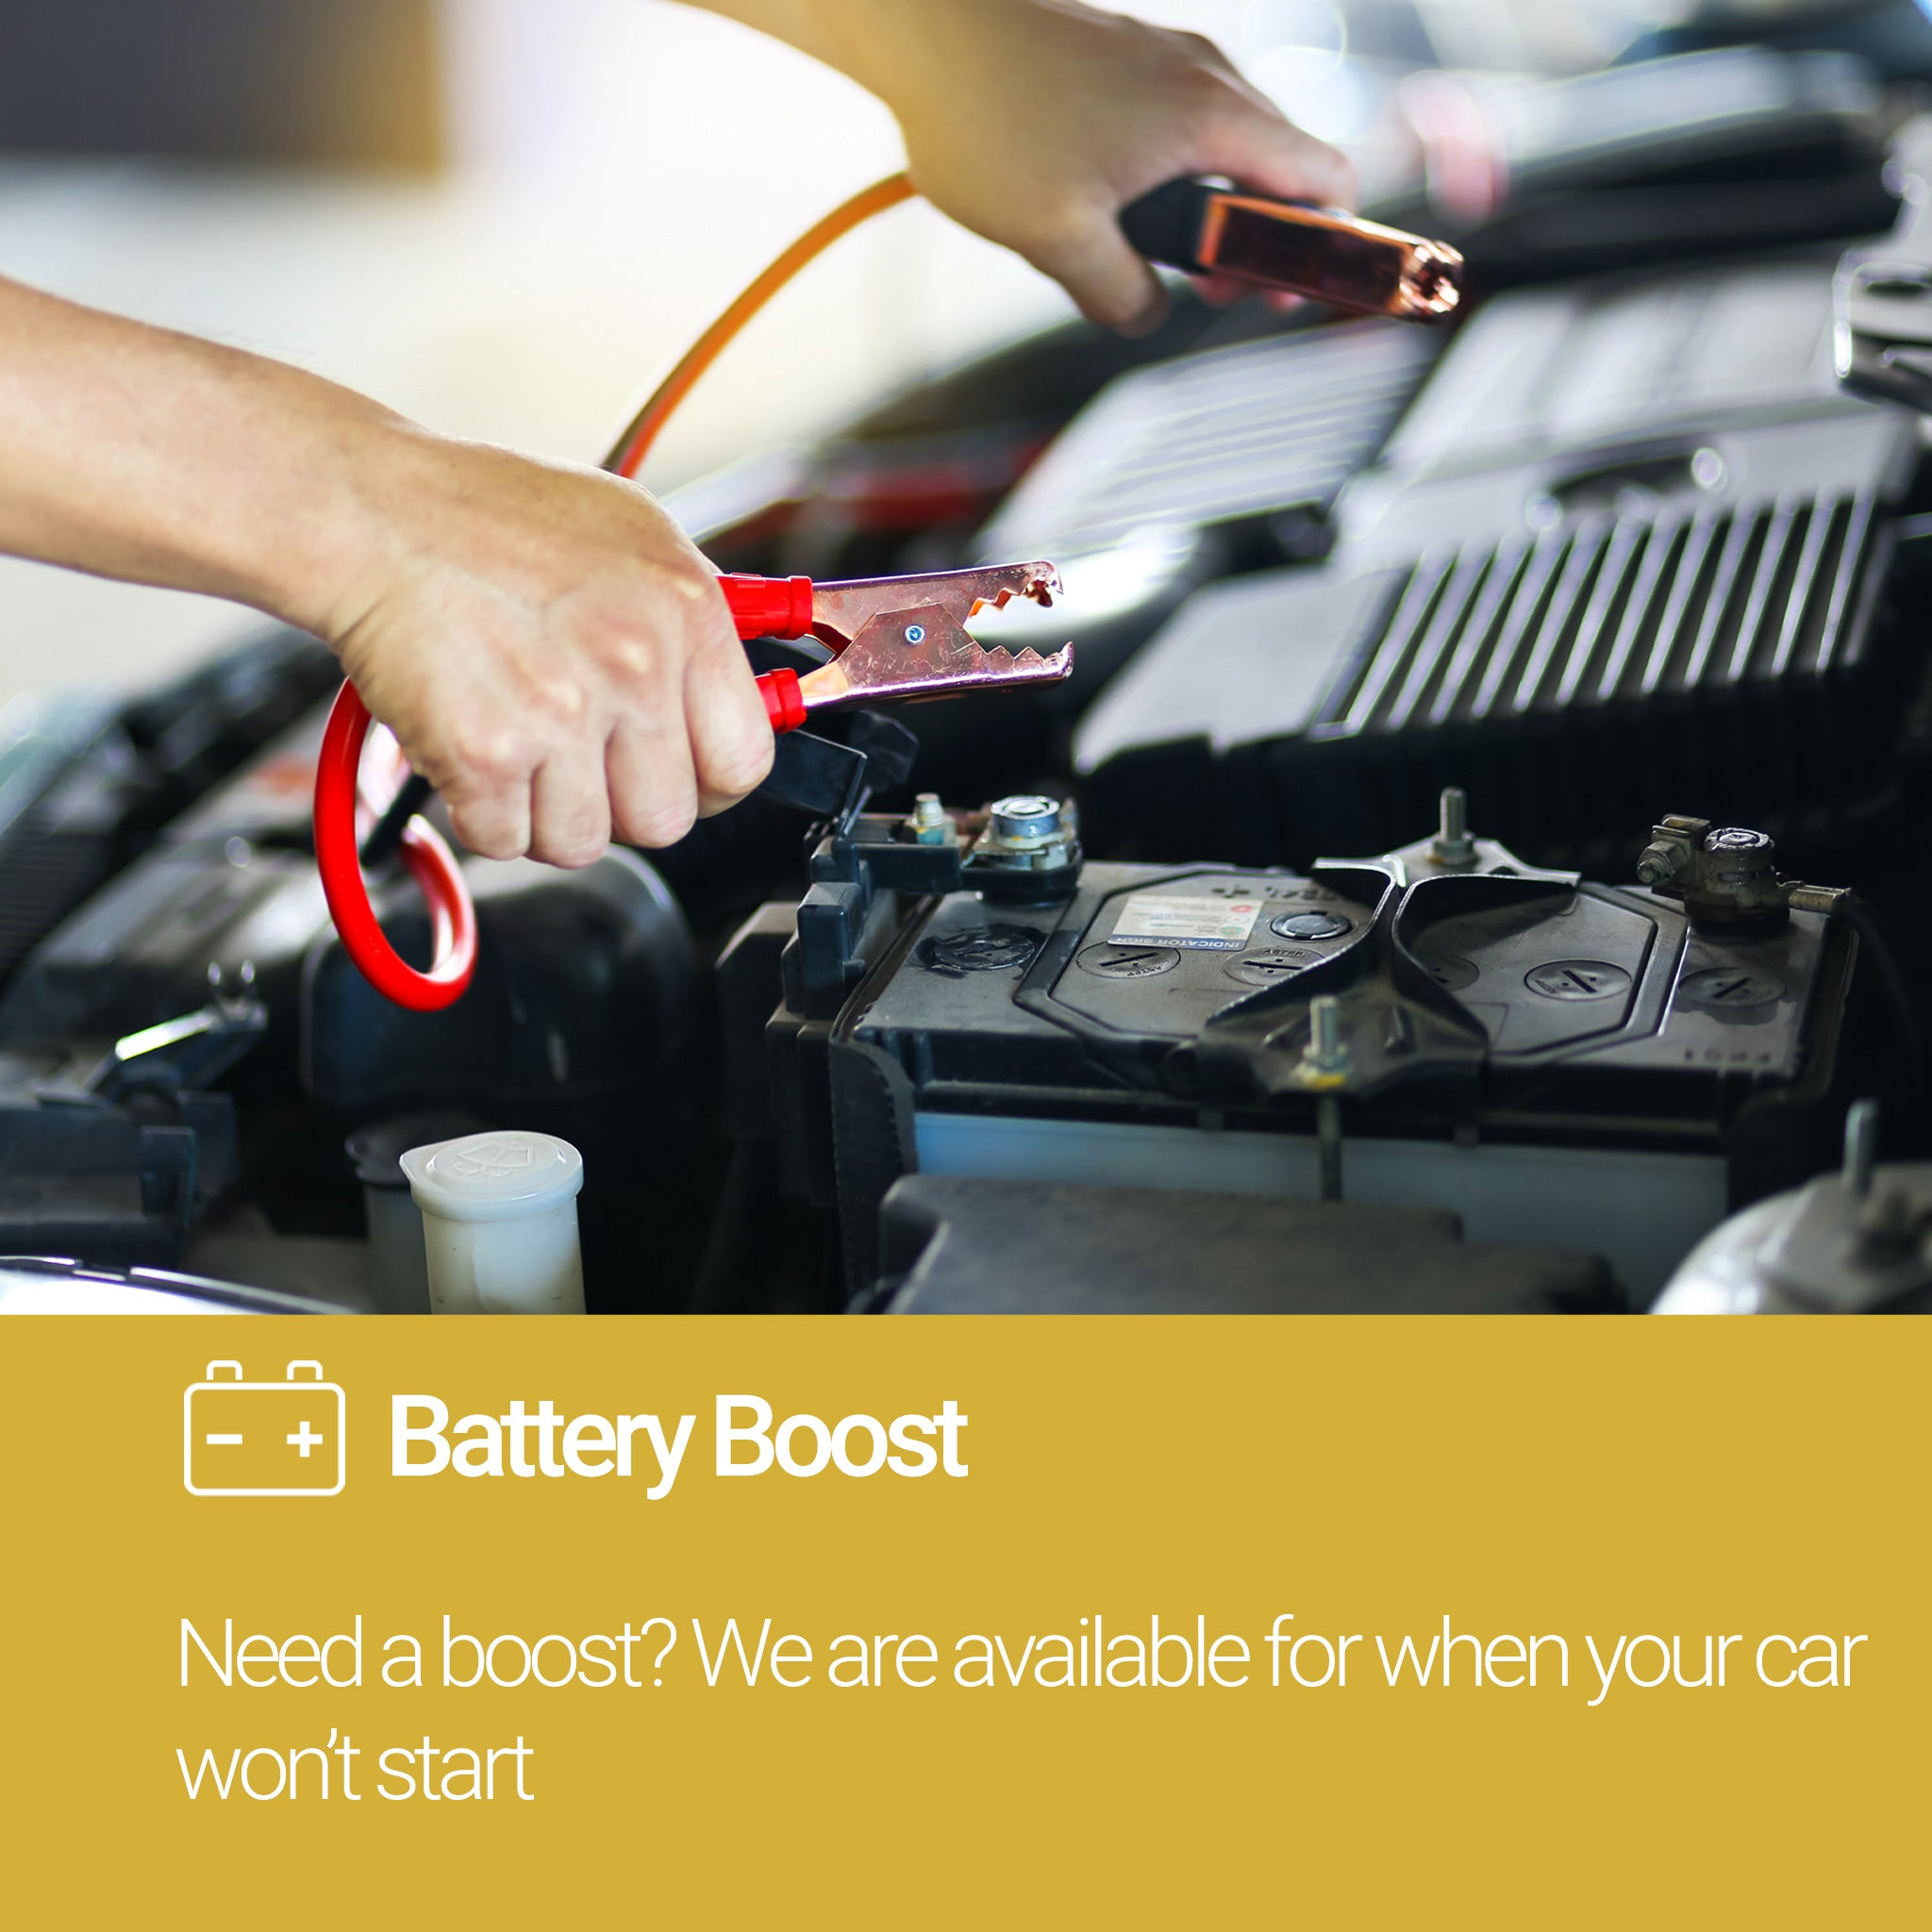 Roadside Assistance Gold Plan Battery Boost Service